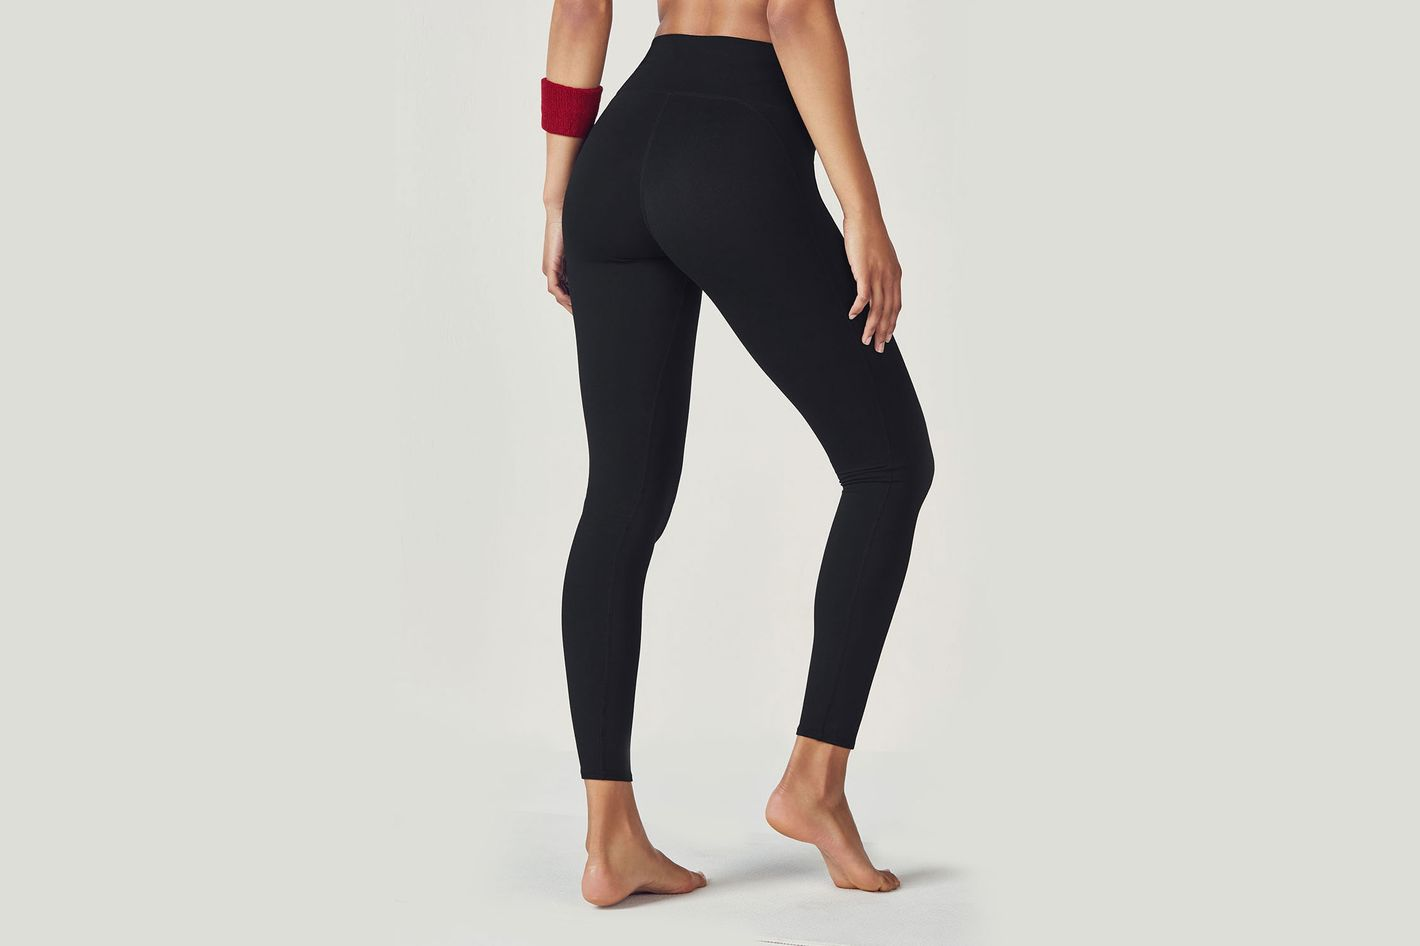 e31582d86f56c8 Fabletics High-Waisted Powerhold Leggings